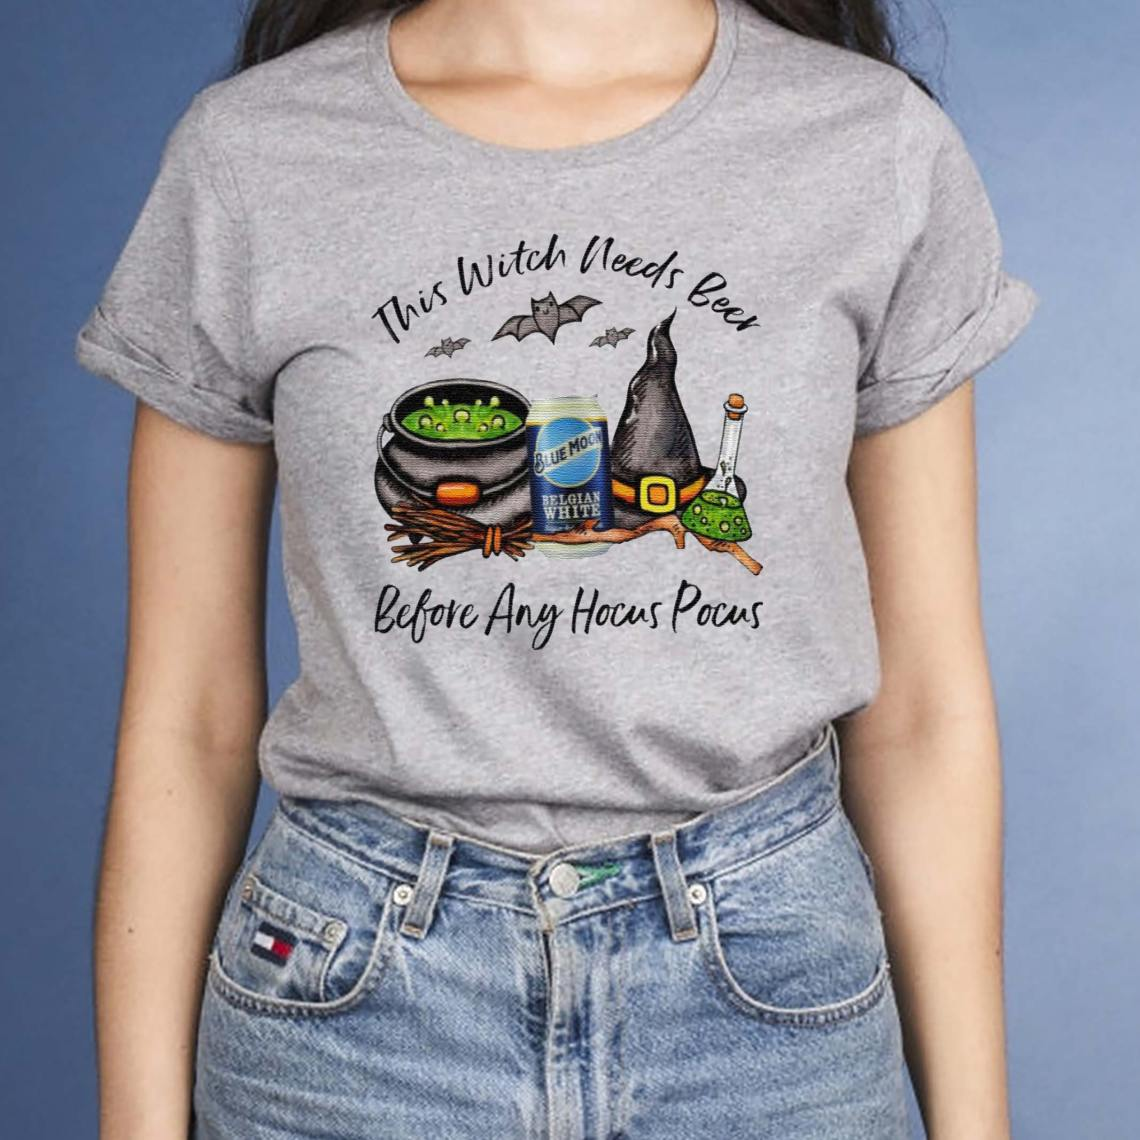 Blue-Moon-Belgian-White-Can-This-Witch-Needs-Beer-Before-Any-Hocus-Pocus-T-Shirts